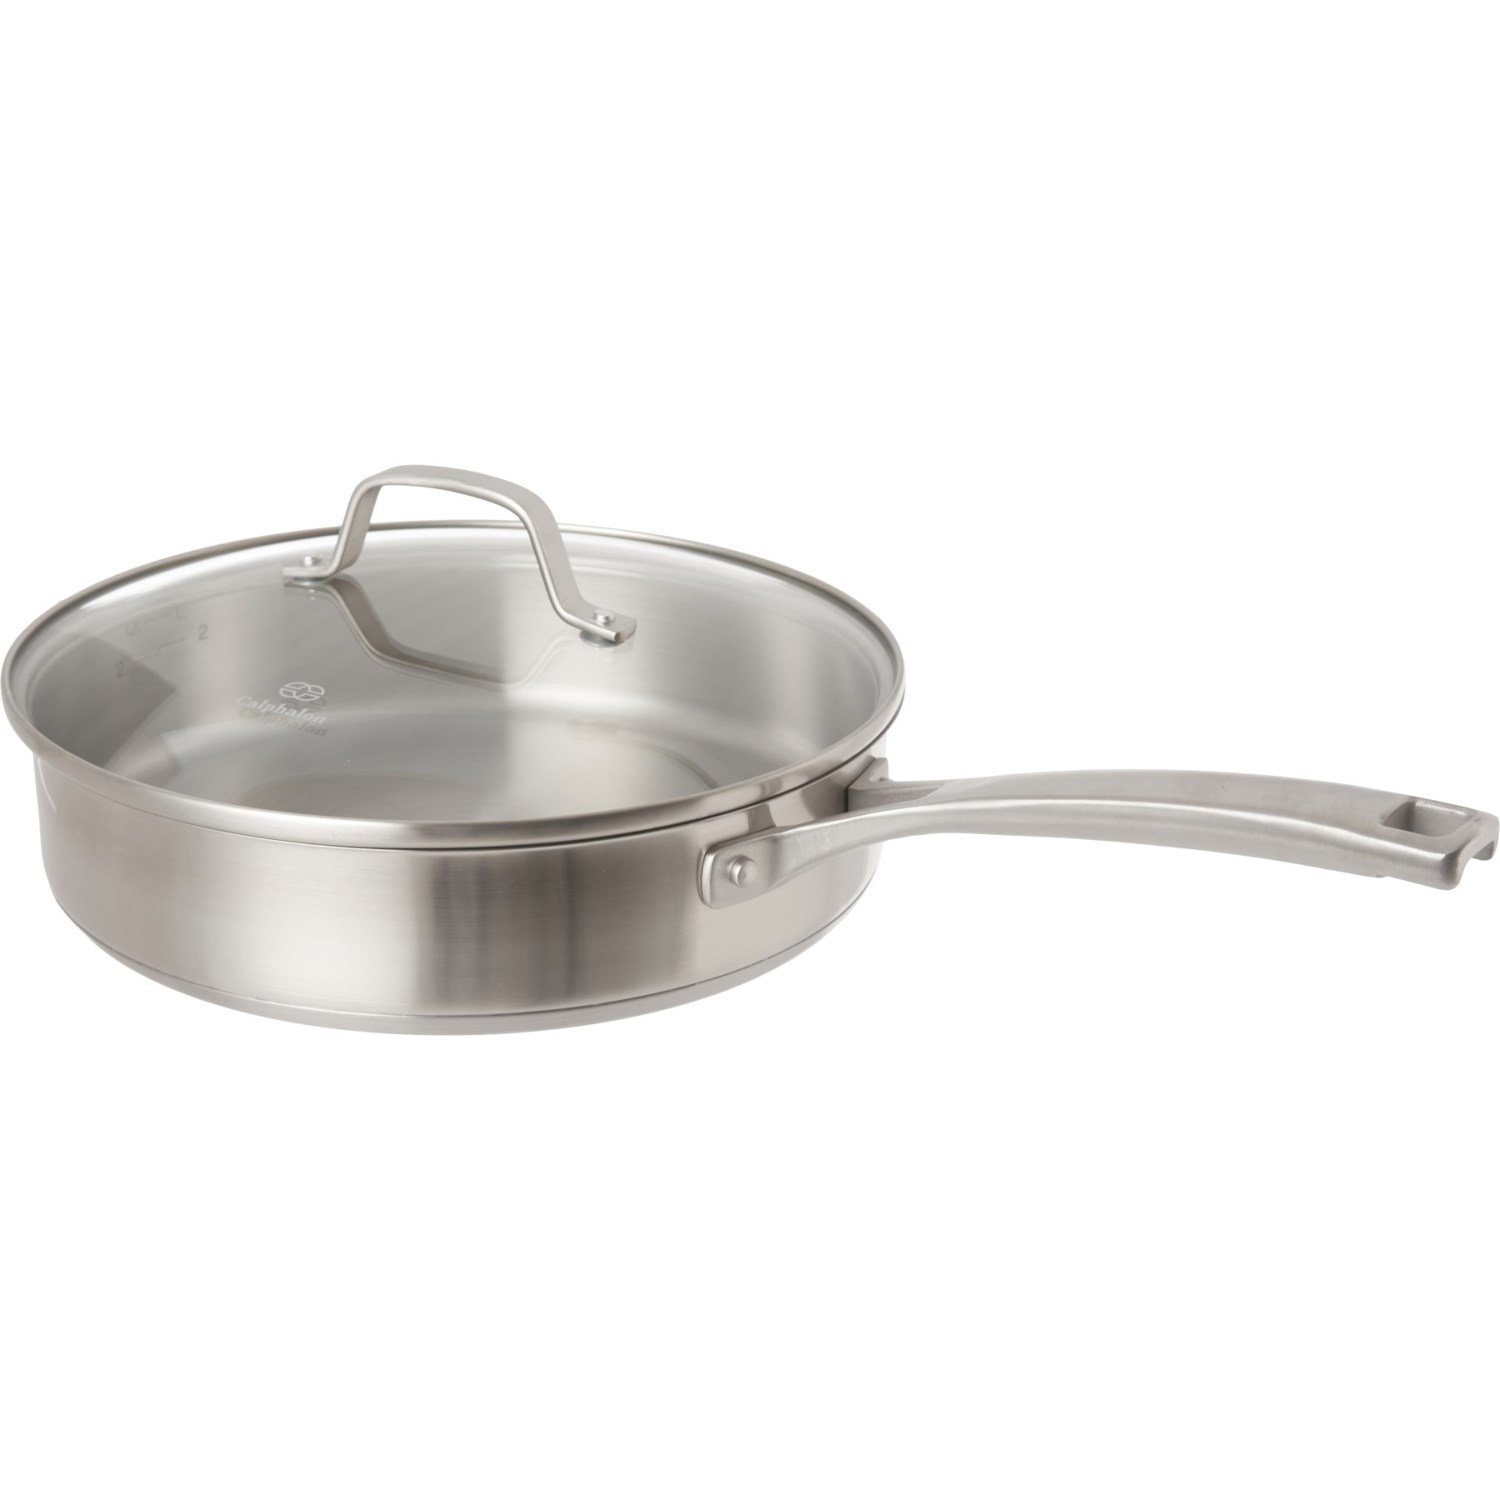 Stupendous Calphalon Classic Stainless Steel Saucepan With Lid 3 Qt Home Remodeling Inspirations Genioncuboardxyz